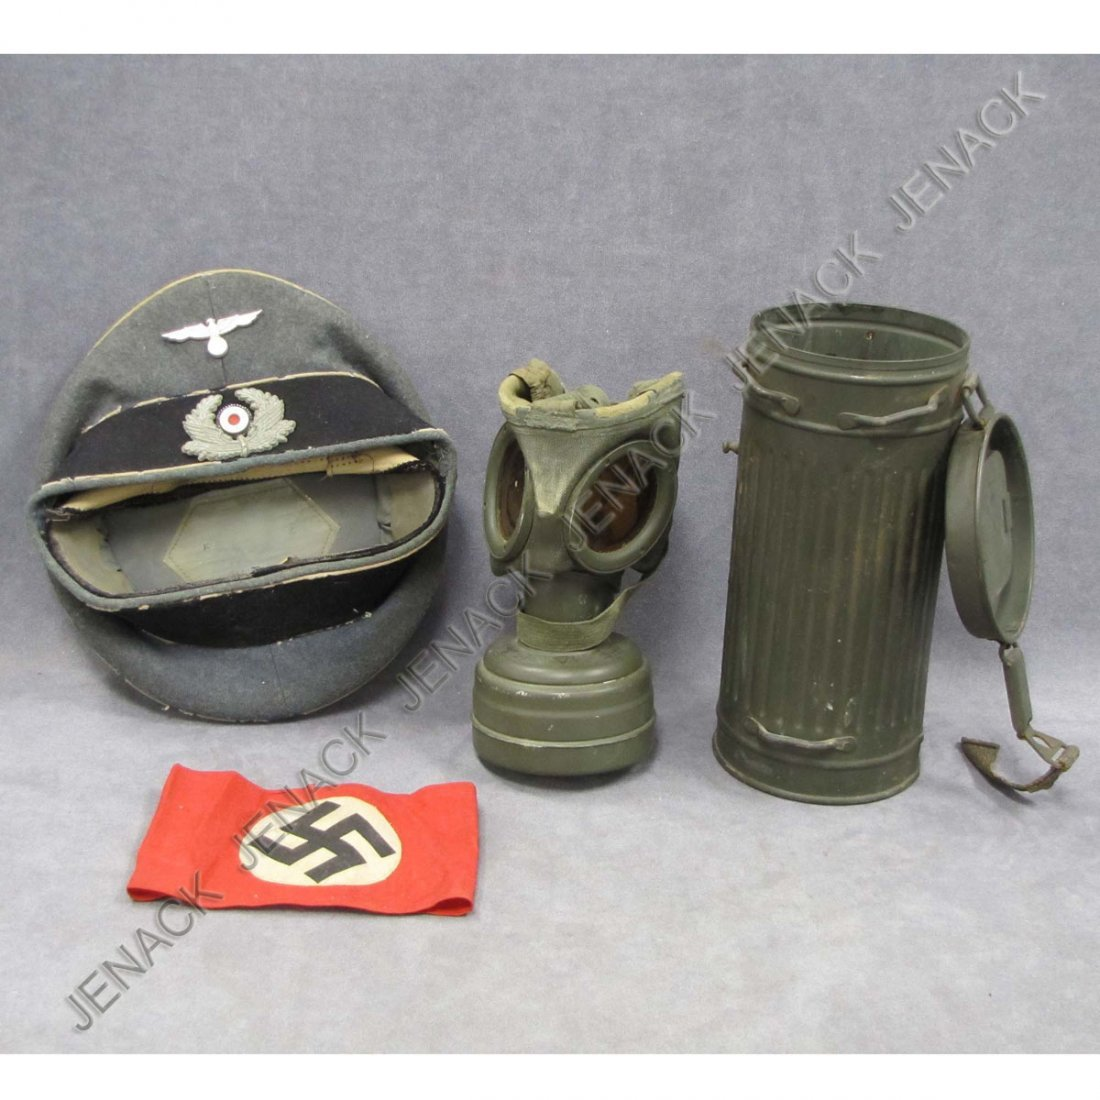 13: GERMAN WWII LOT (3) INCLUDING CANISTER GAS MASK